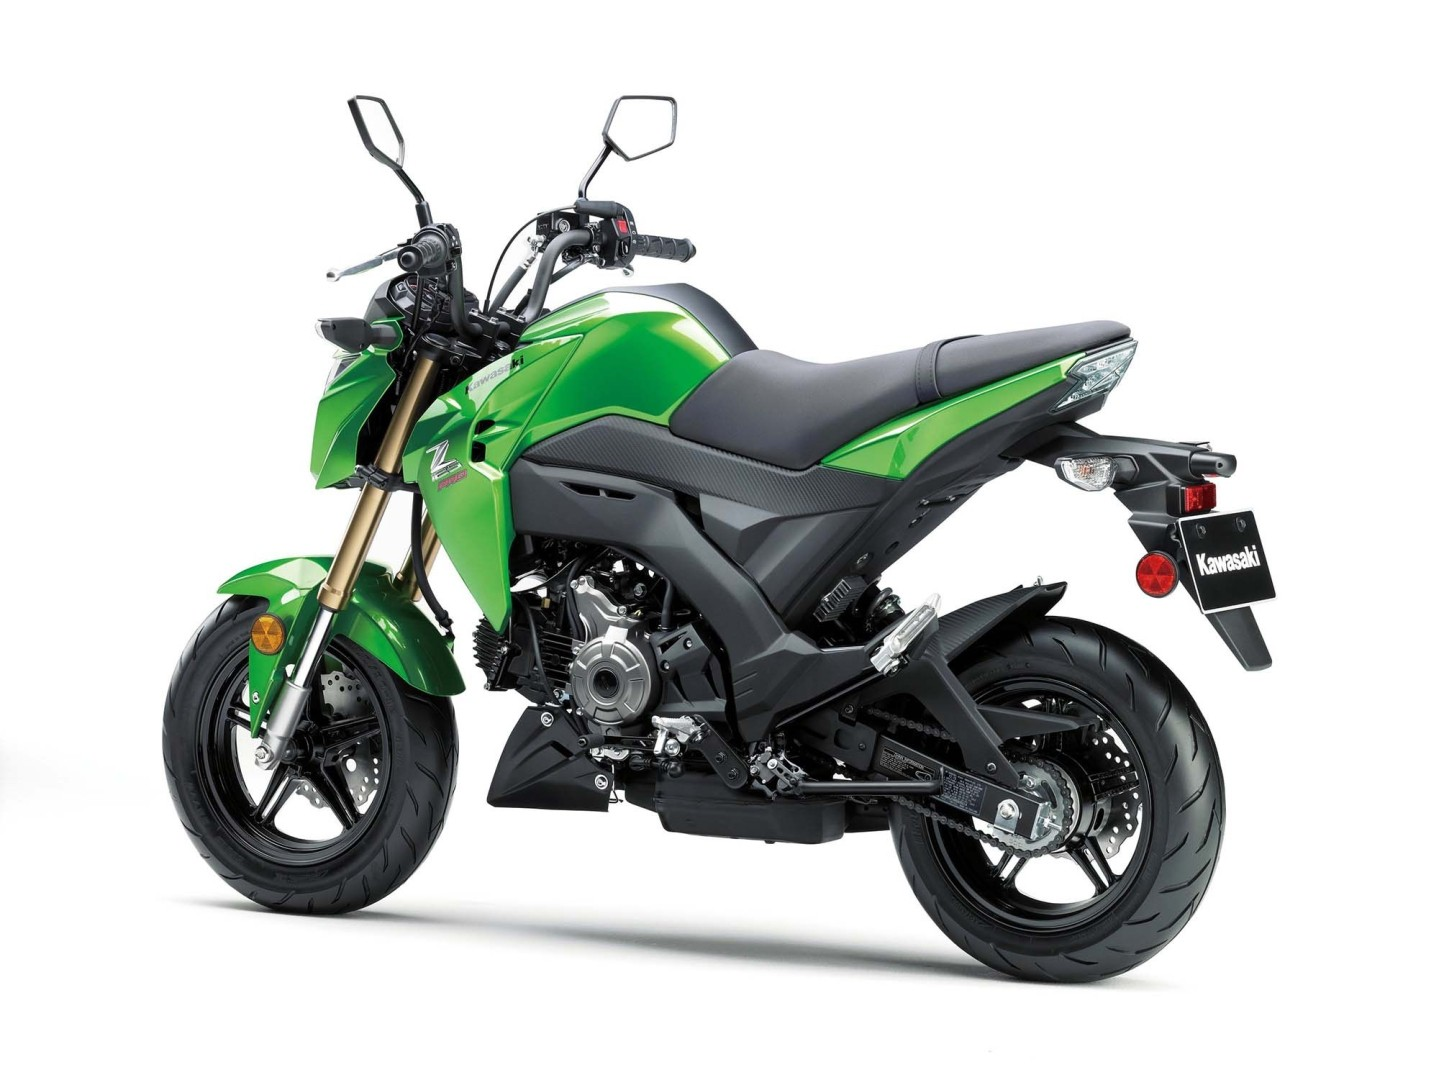 ... Kawasaki Z125 Pro Is the Authentic Honda Grom Rival - autoevolution